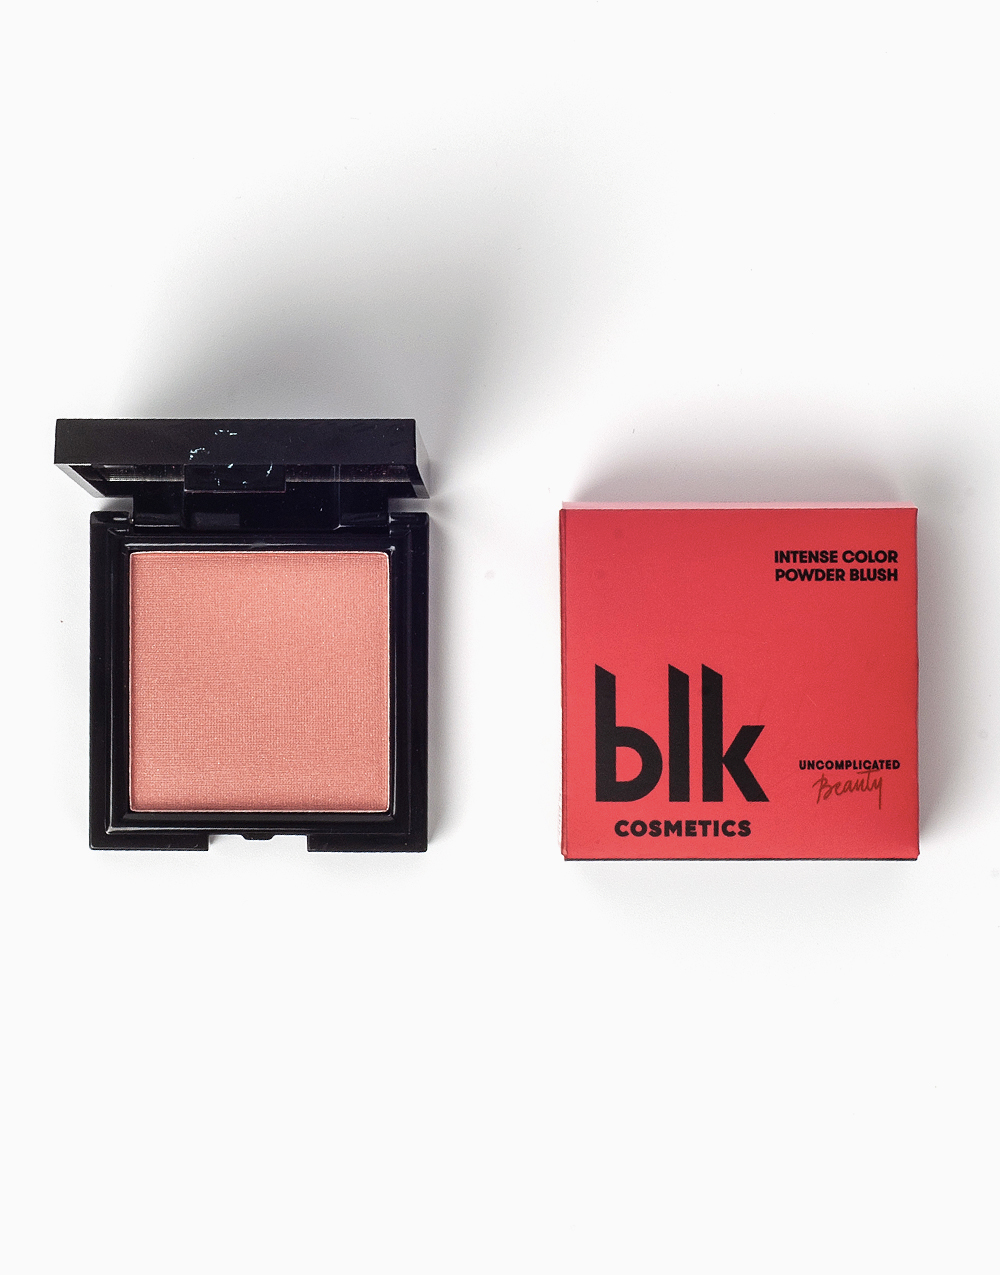 Intense Color Powder Blush in Flushed by BLK Cosmetics